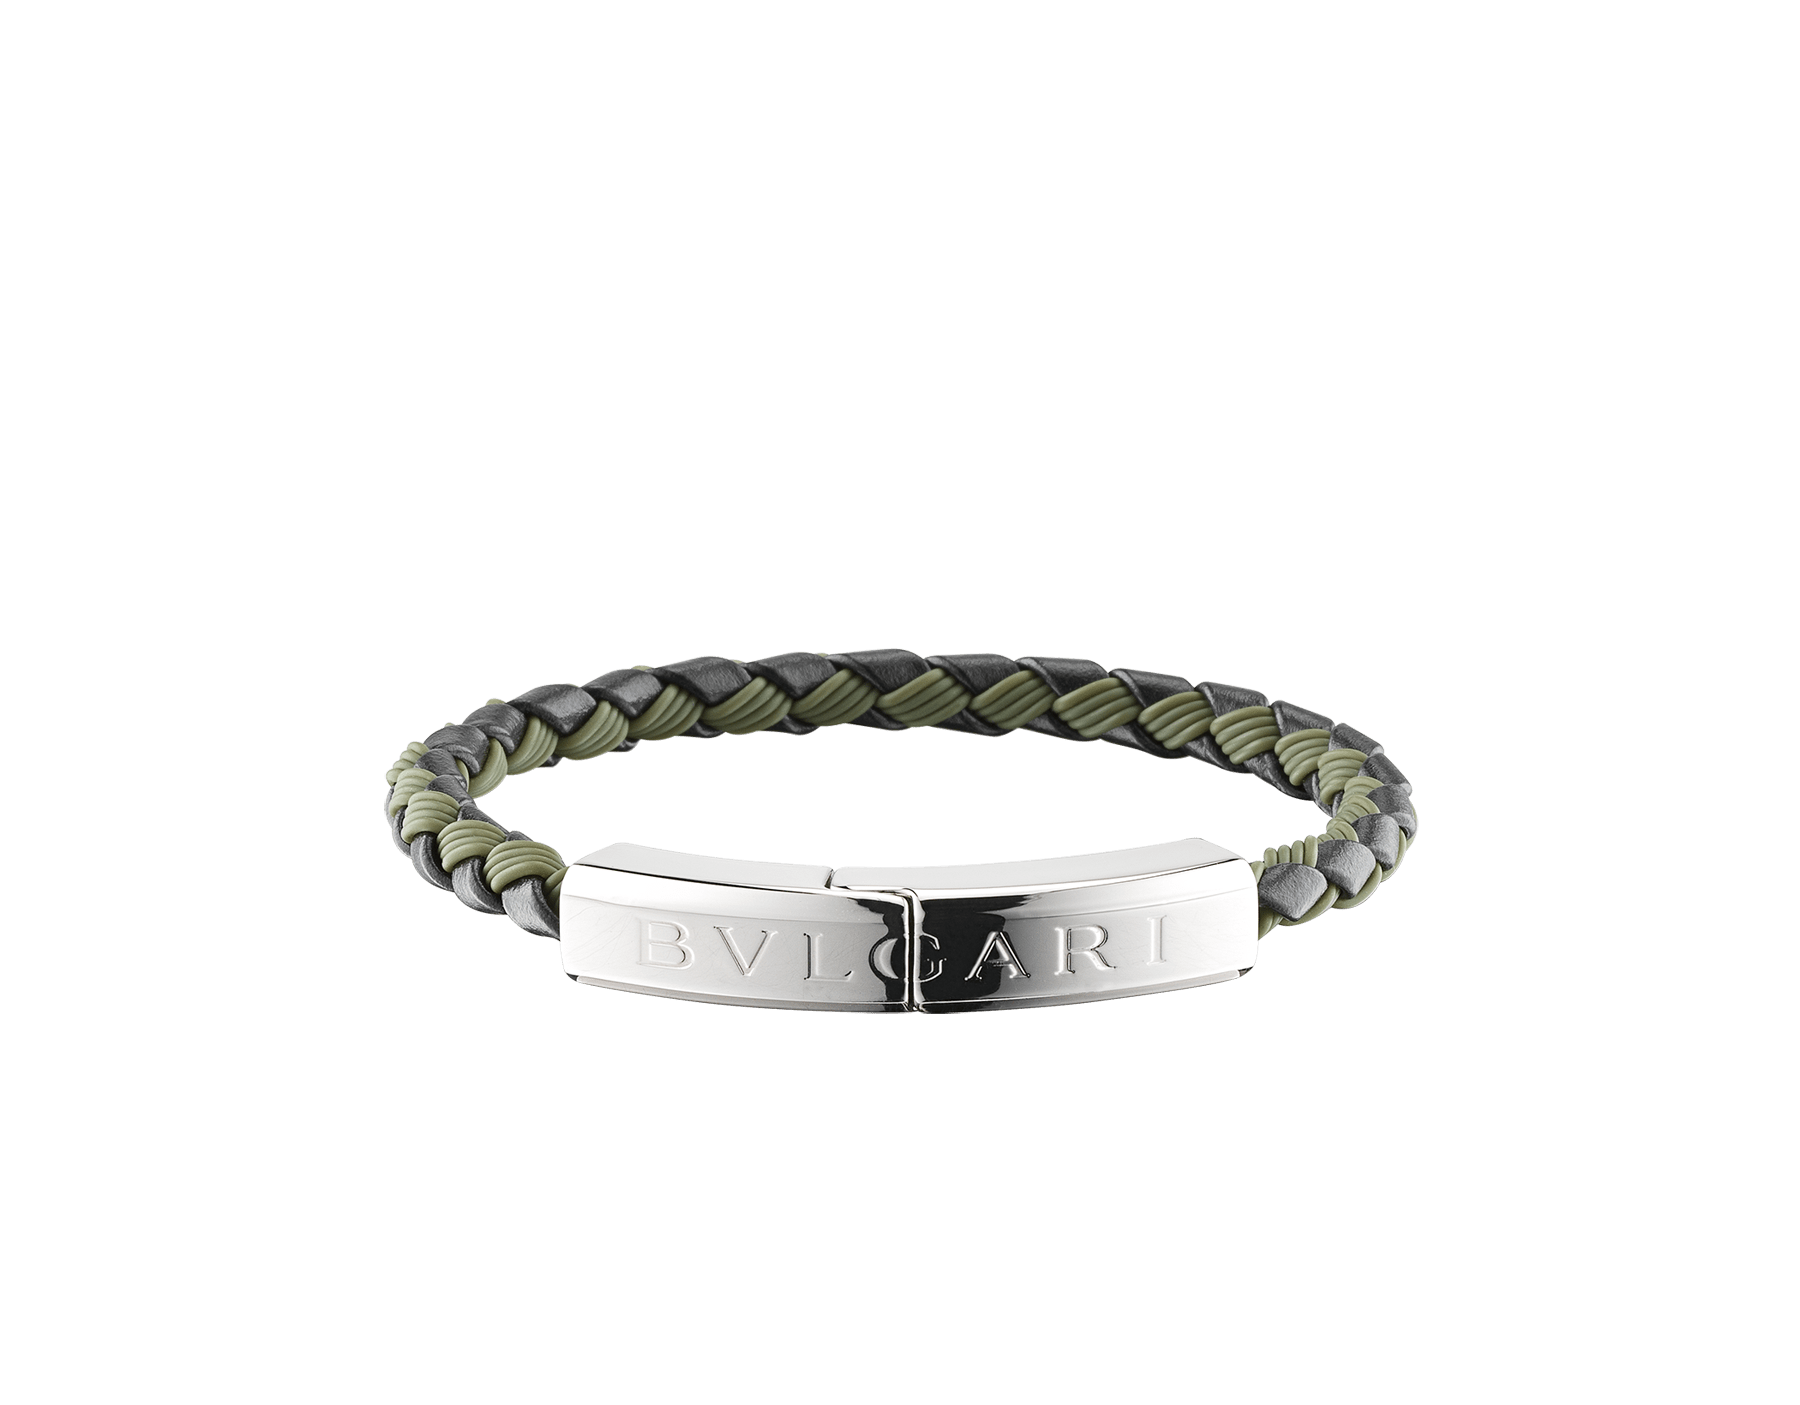 """BVLGARI BVLGARI"" bracelet in black calf leather and mimetic jade rubber with a palladium plated brass plate closure with Bvlgari logo. LogoPlate-CLR-BMJ image 1"